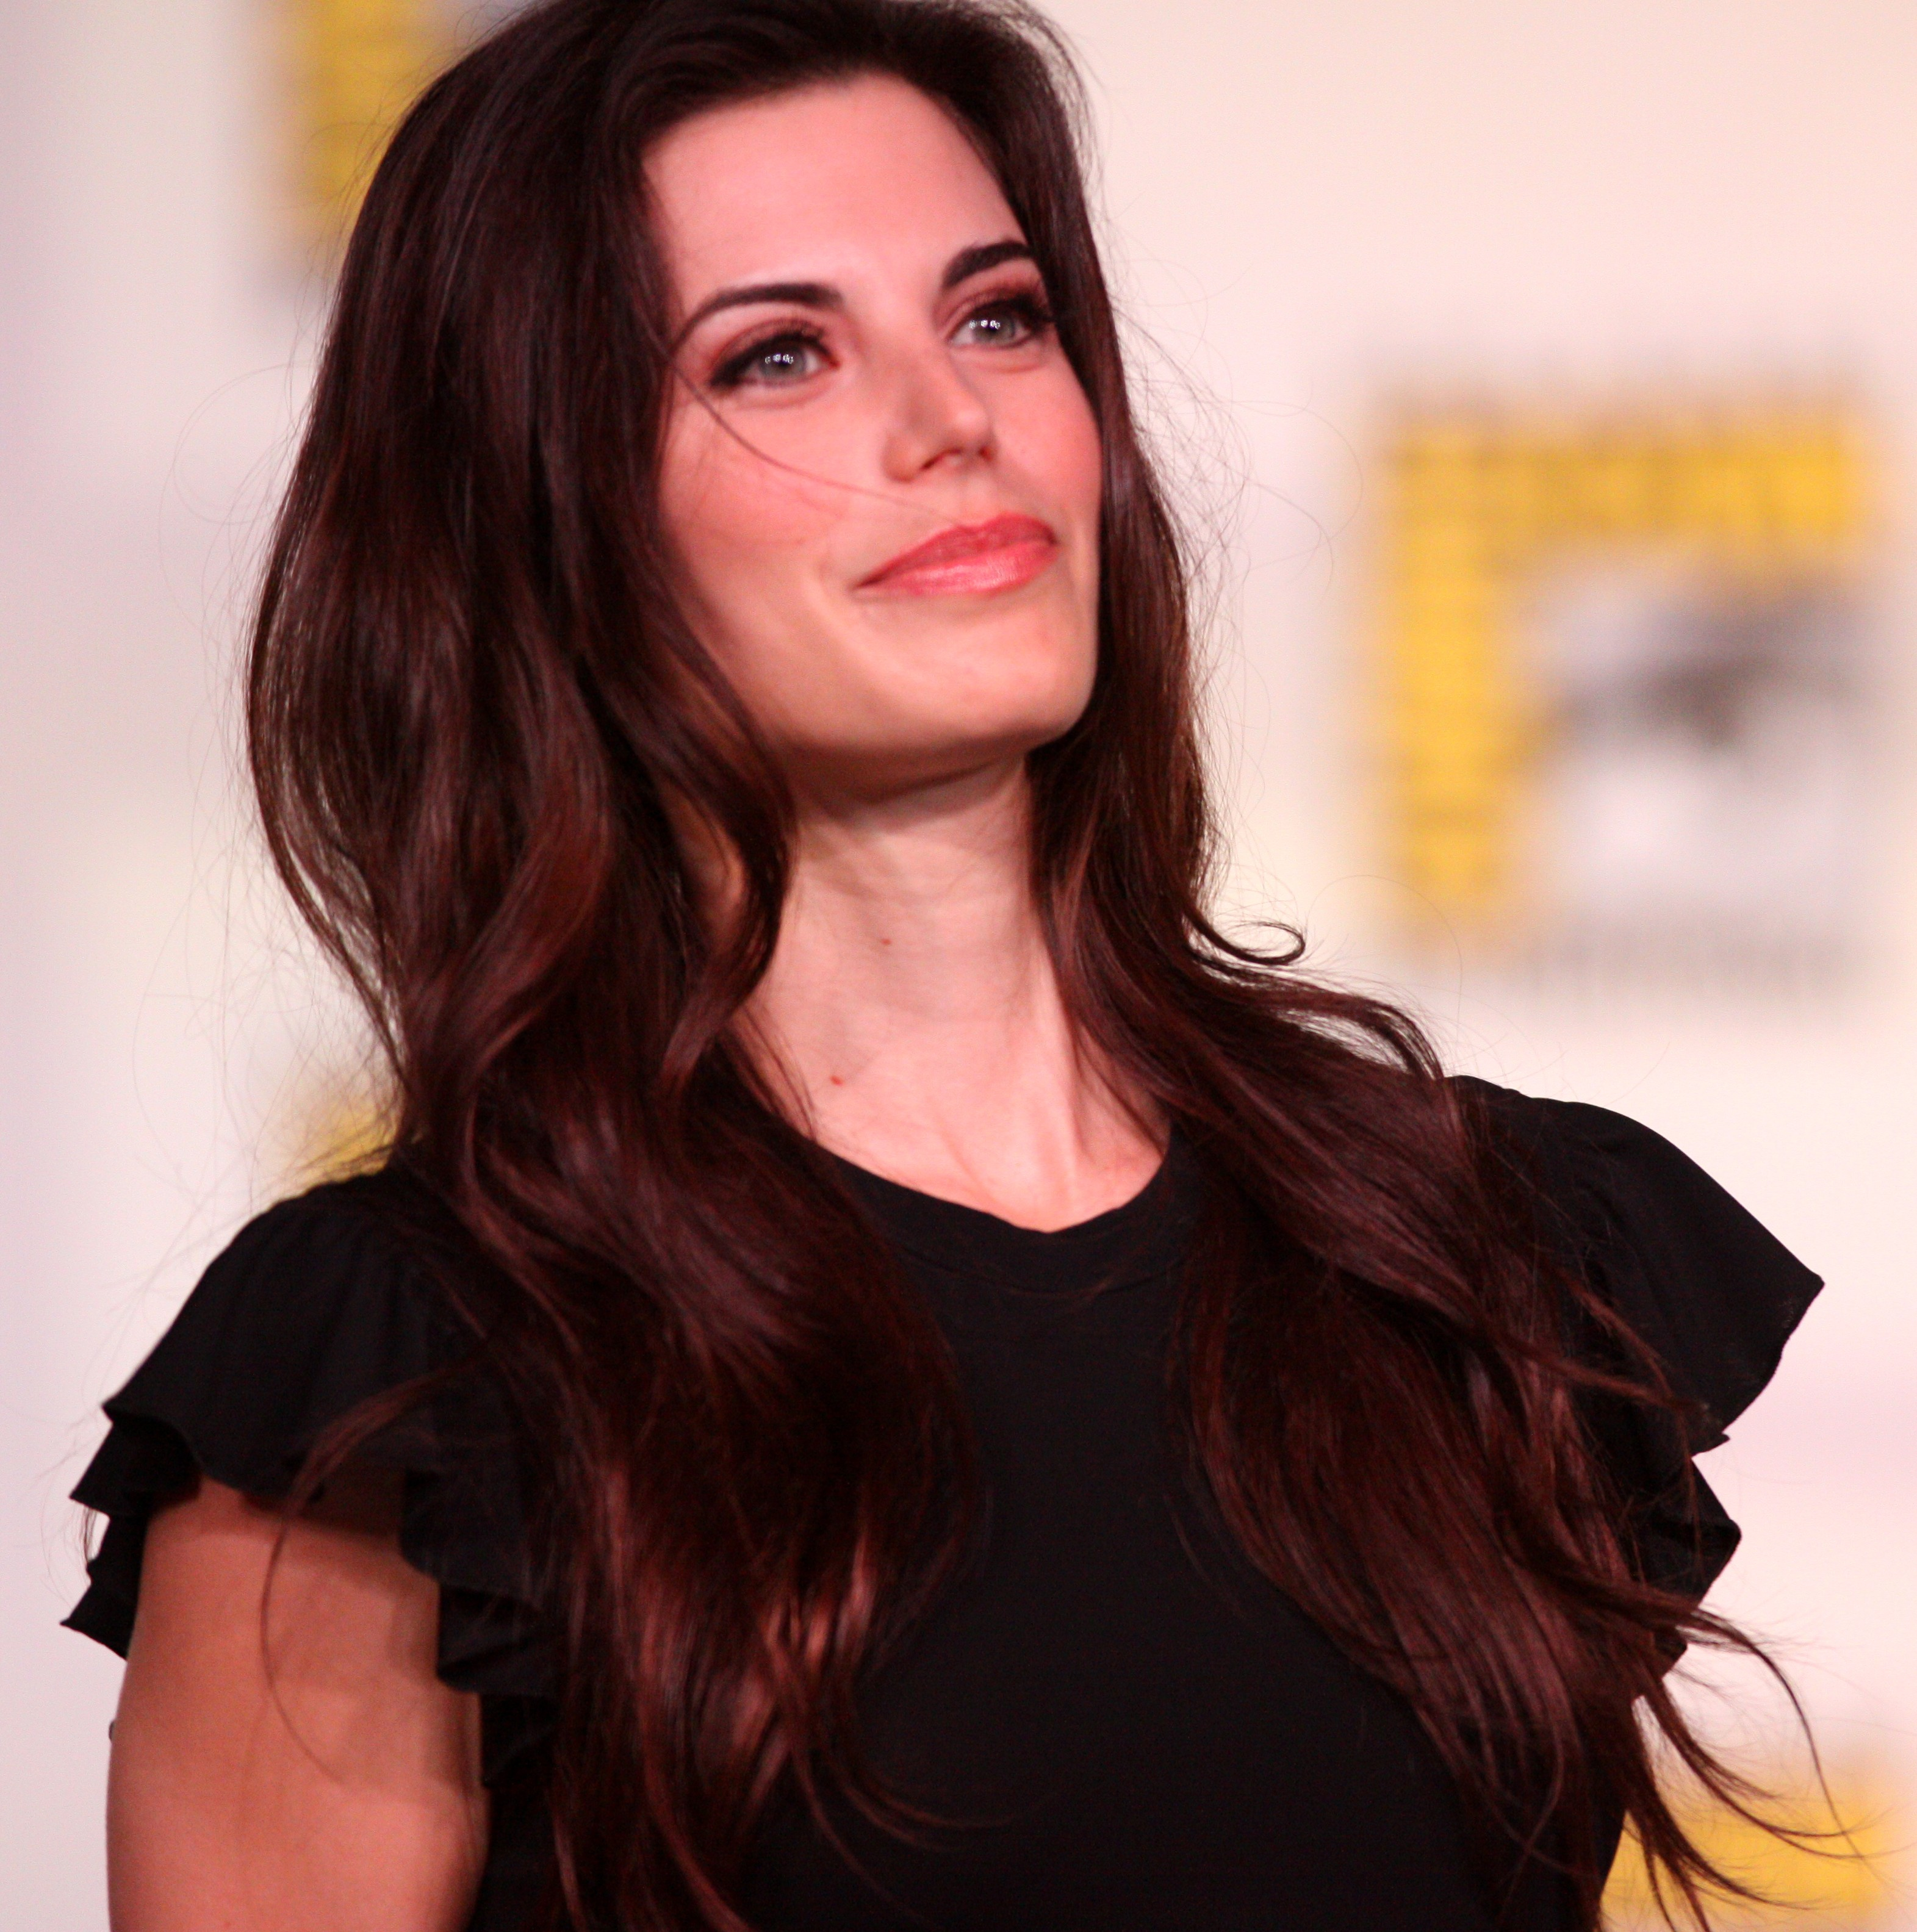 The 36-year old daughter of father (?) and mother(?) Meghan Ory in 2018 photo. Meghan Ory earned a  million dollar salary - leaving the net worth at 2 million in 2018